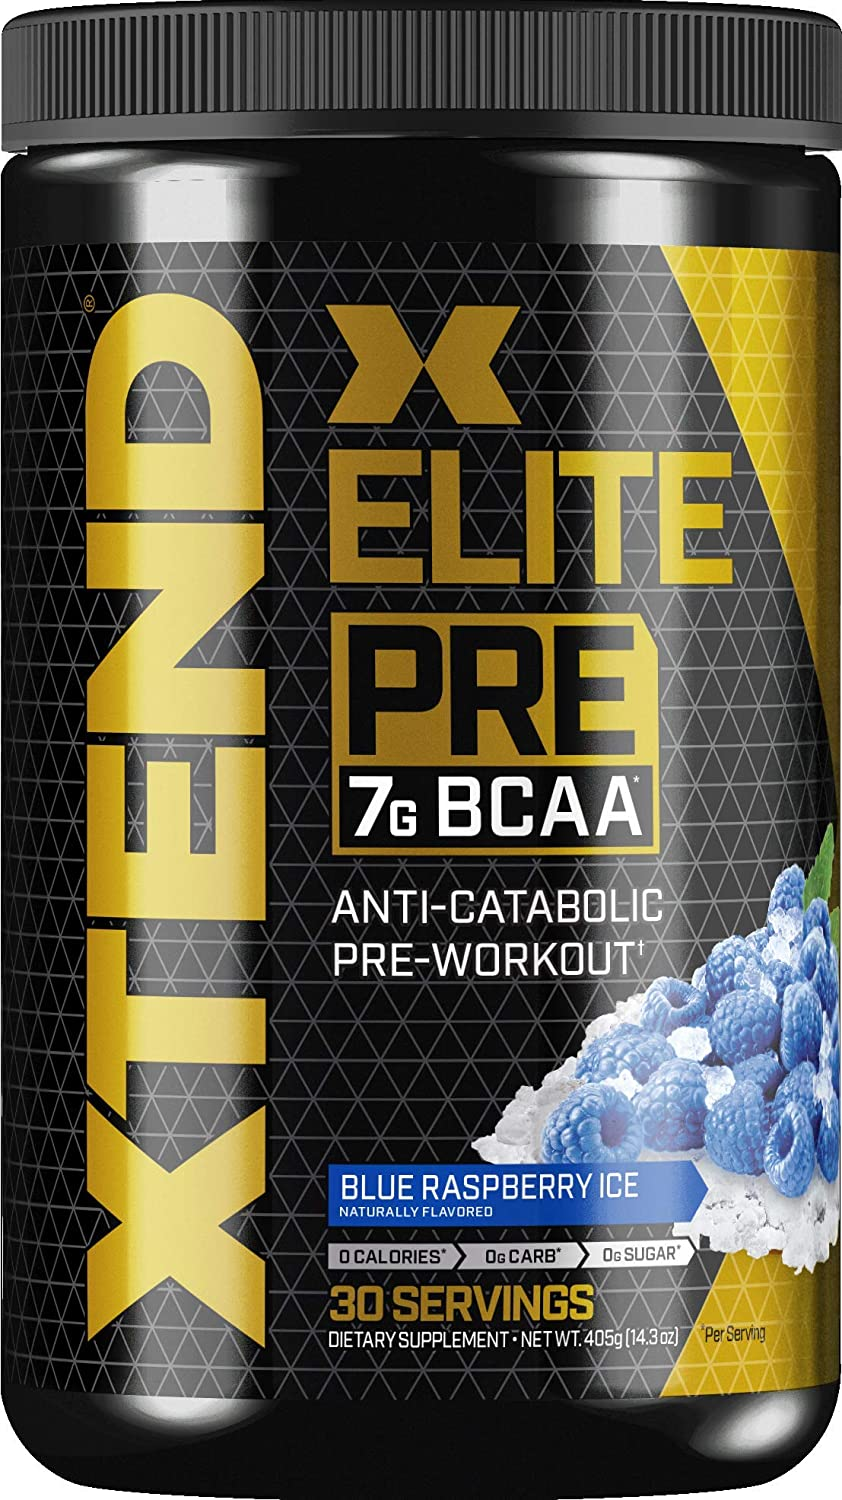 Scivation Xtend Elite Pre Bcaa Powder Anti-catabolic Pre Workout Drink Branched Chain Amino Acids Bcaas, Blue Raspberry Ice, 30 Servings